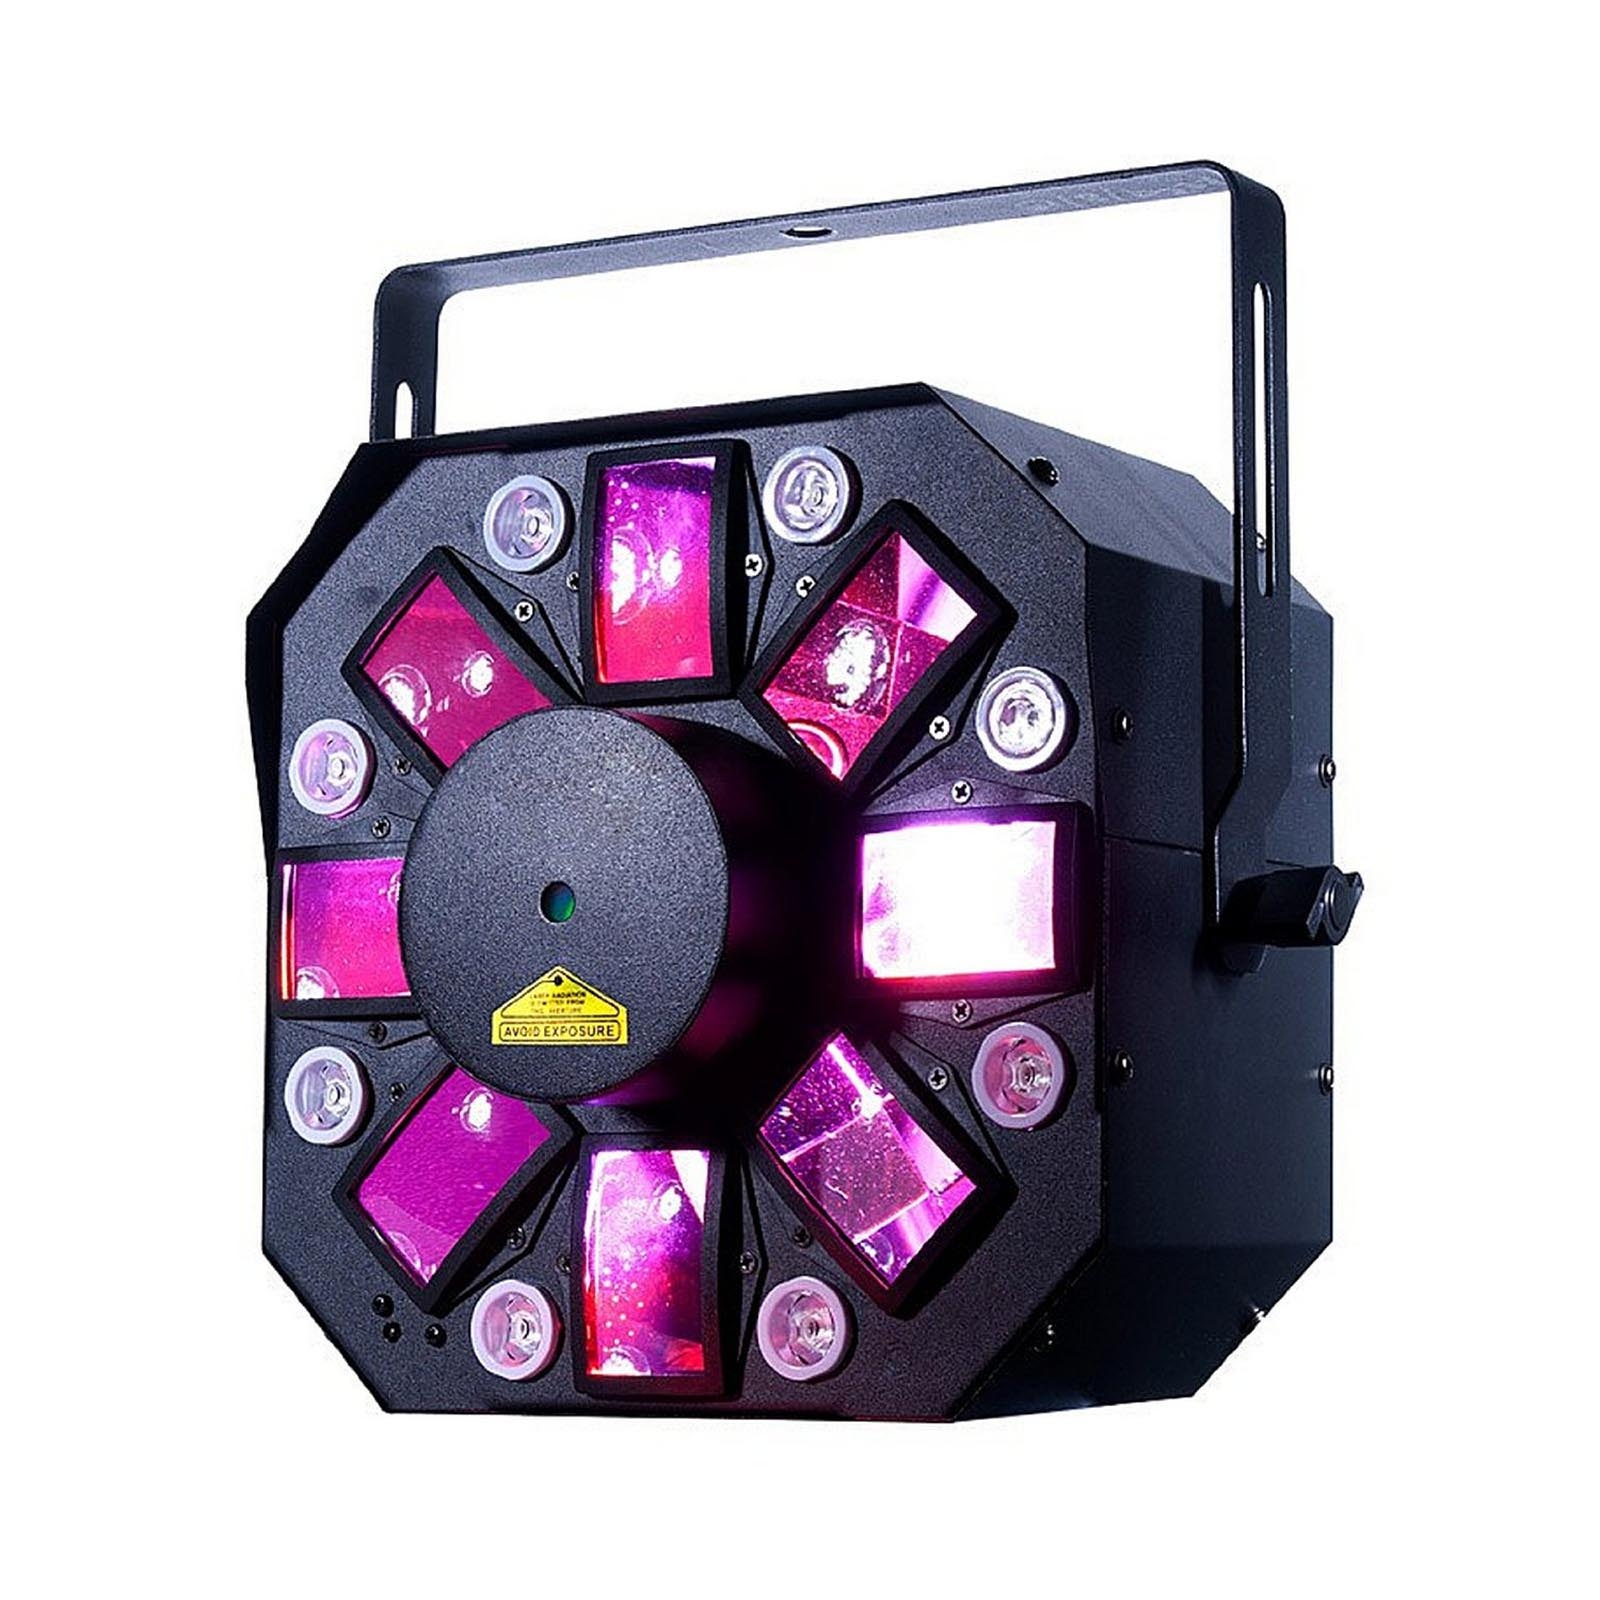 American DJ Stinger II 3 in 1 FX Moonflower Laser & UV Black Light | STINGER-II by